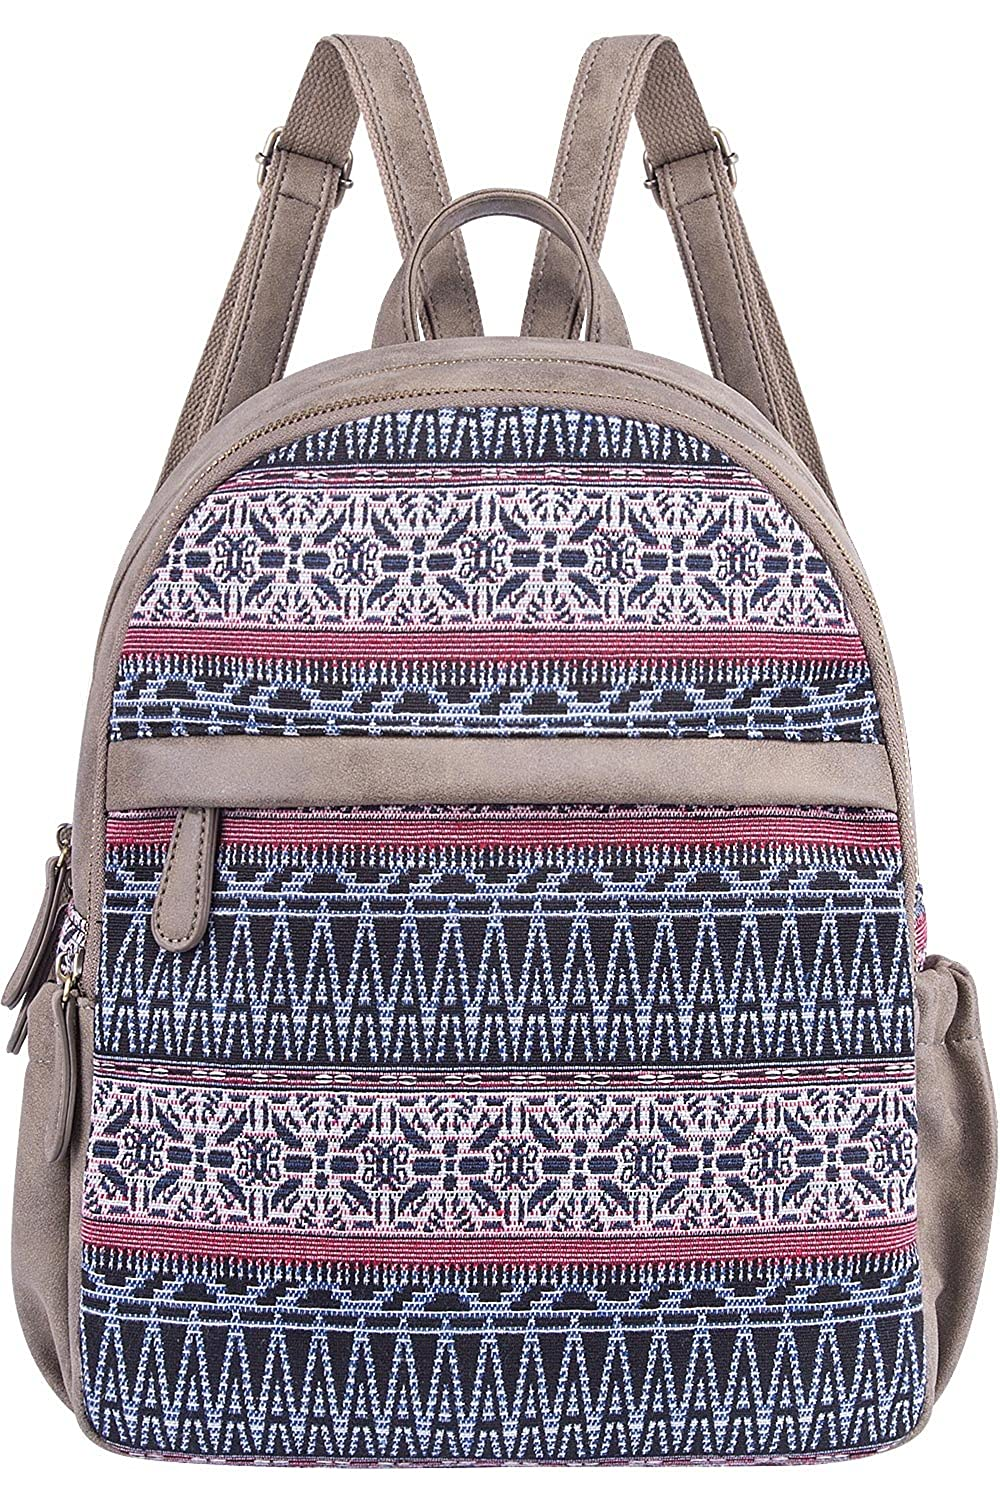 Lily Queen Women Casual Daypack Purse Lightweight Travel Backpack for Girls LQ-1006